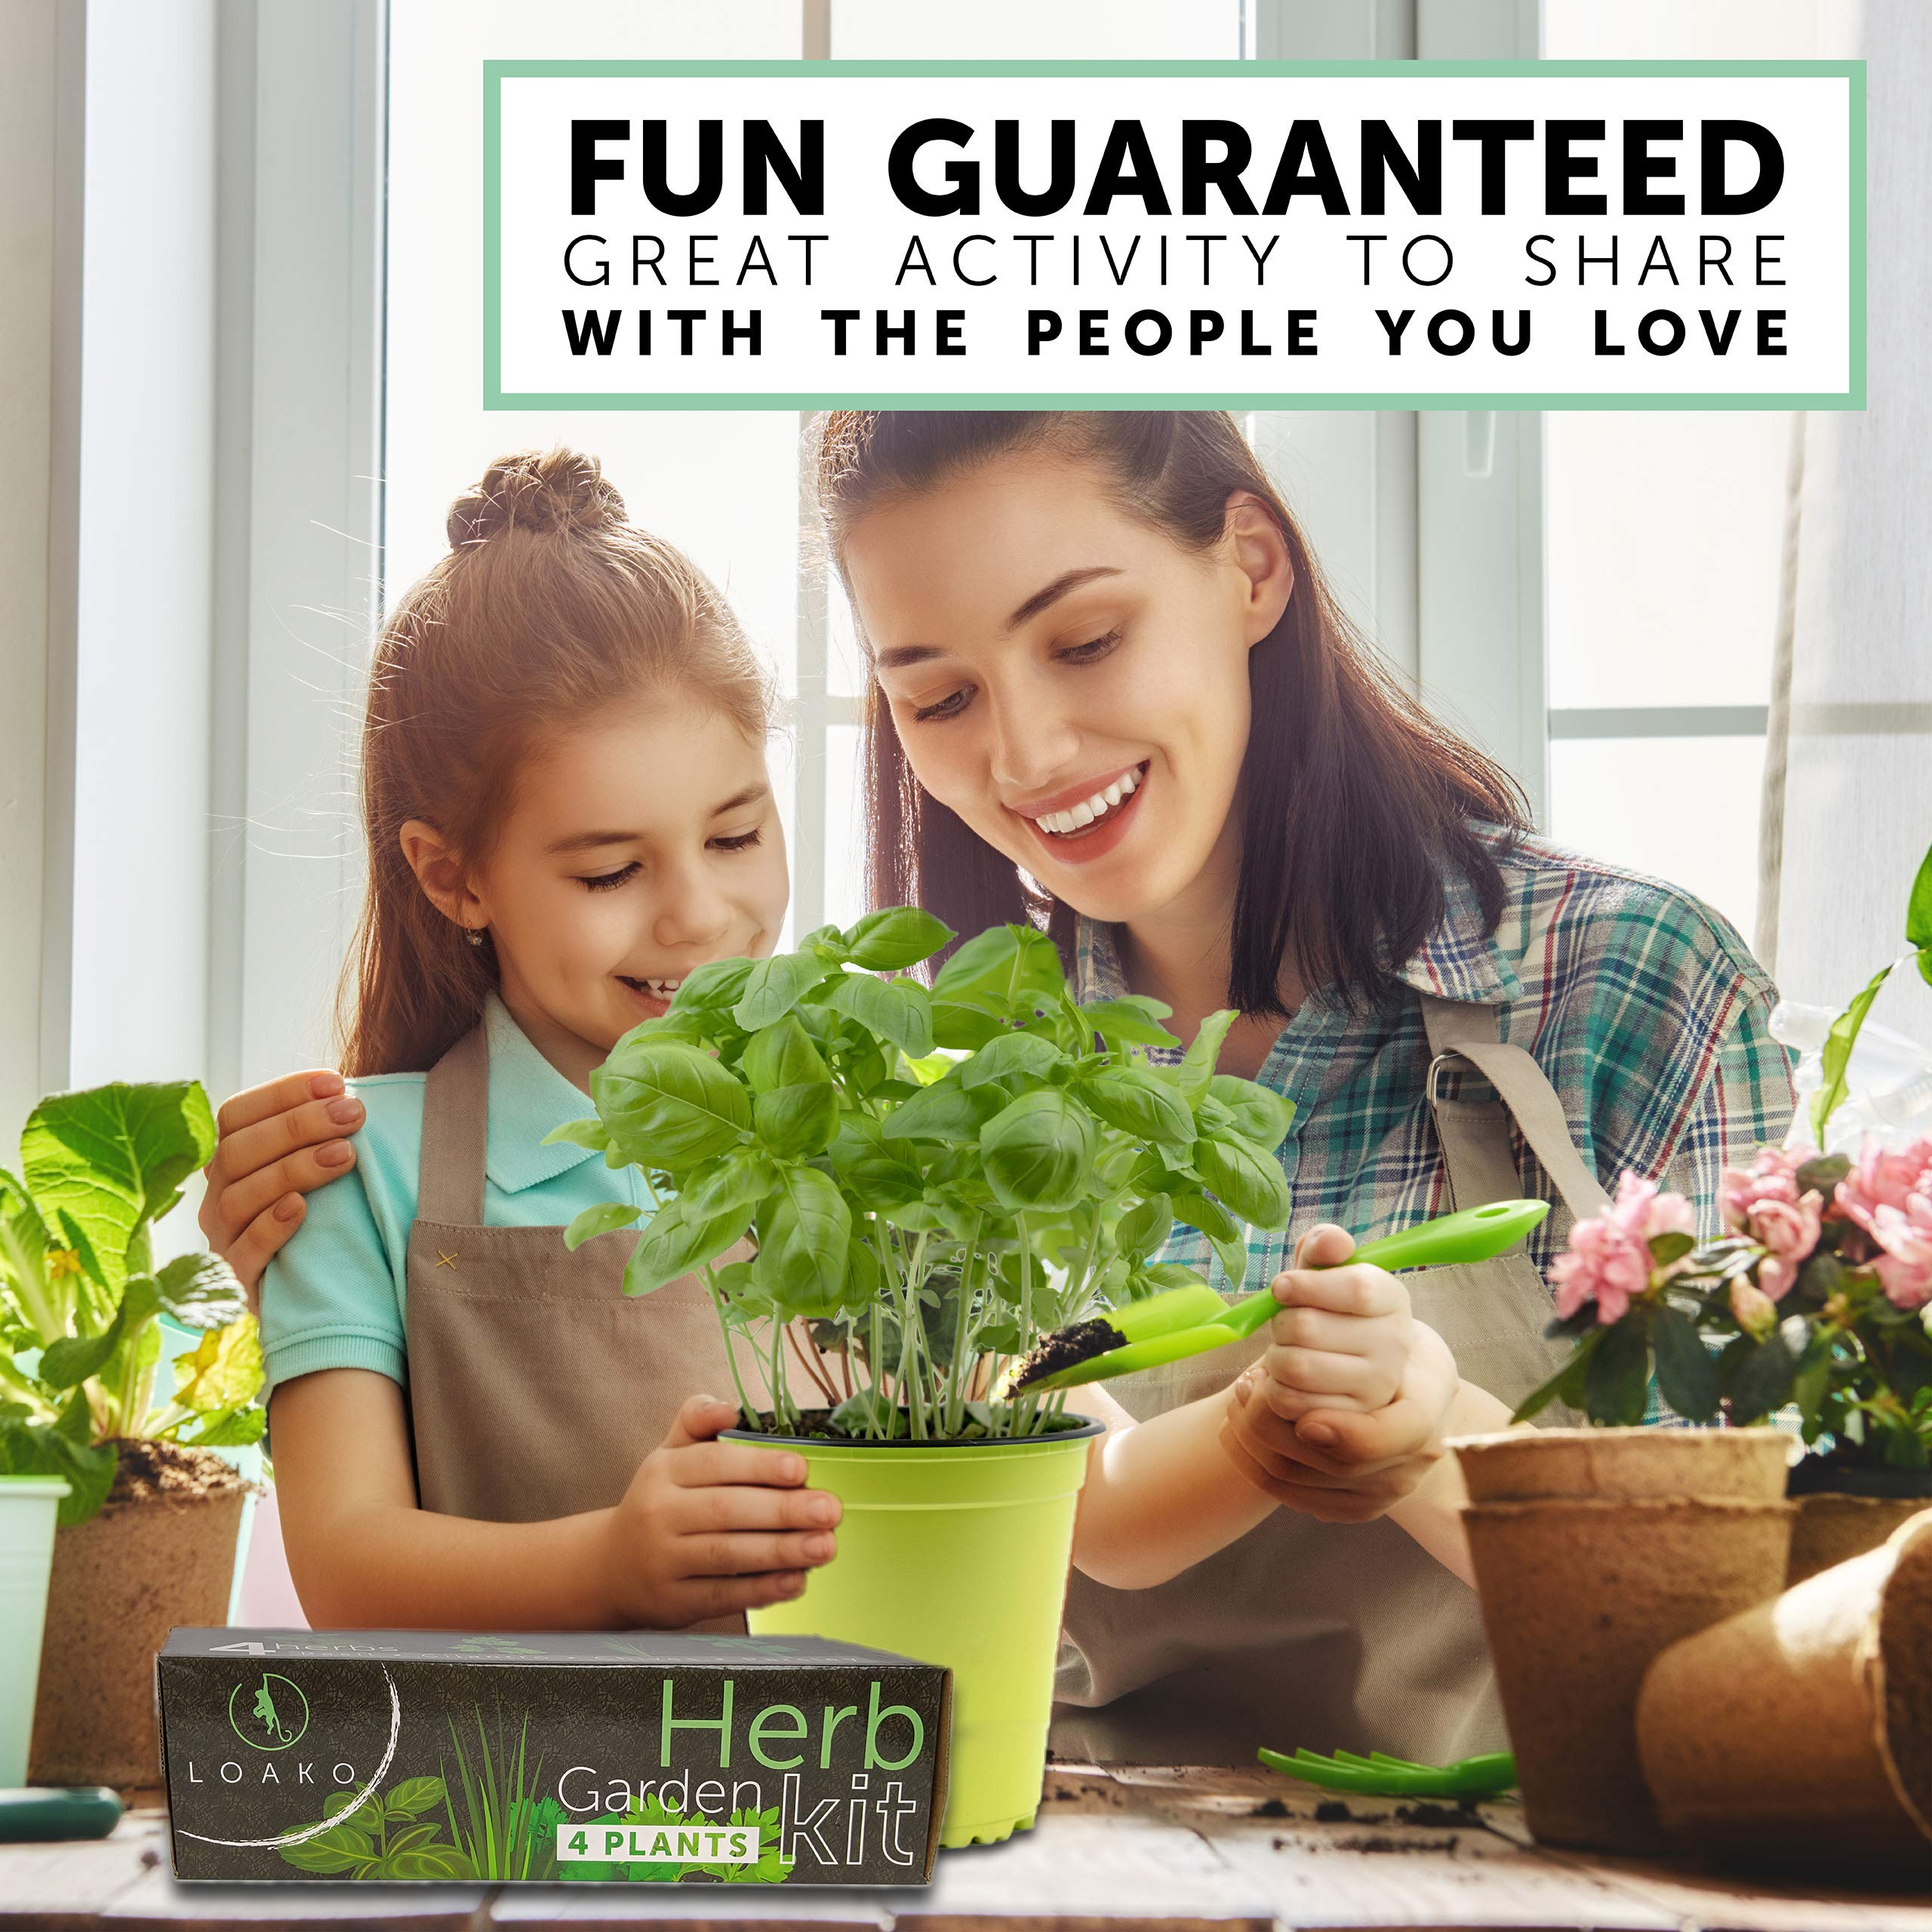 Herb Garden Kit. Includes Pots, Seeds, Soil Pellets, Markers, Instructions Booklet. Basil, Parsley, Cilantro, Chives. Great Gift Idea. Very Easy to Grow by Loako (Image #4)